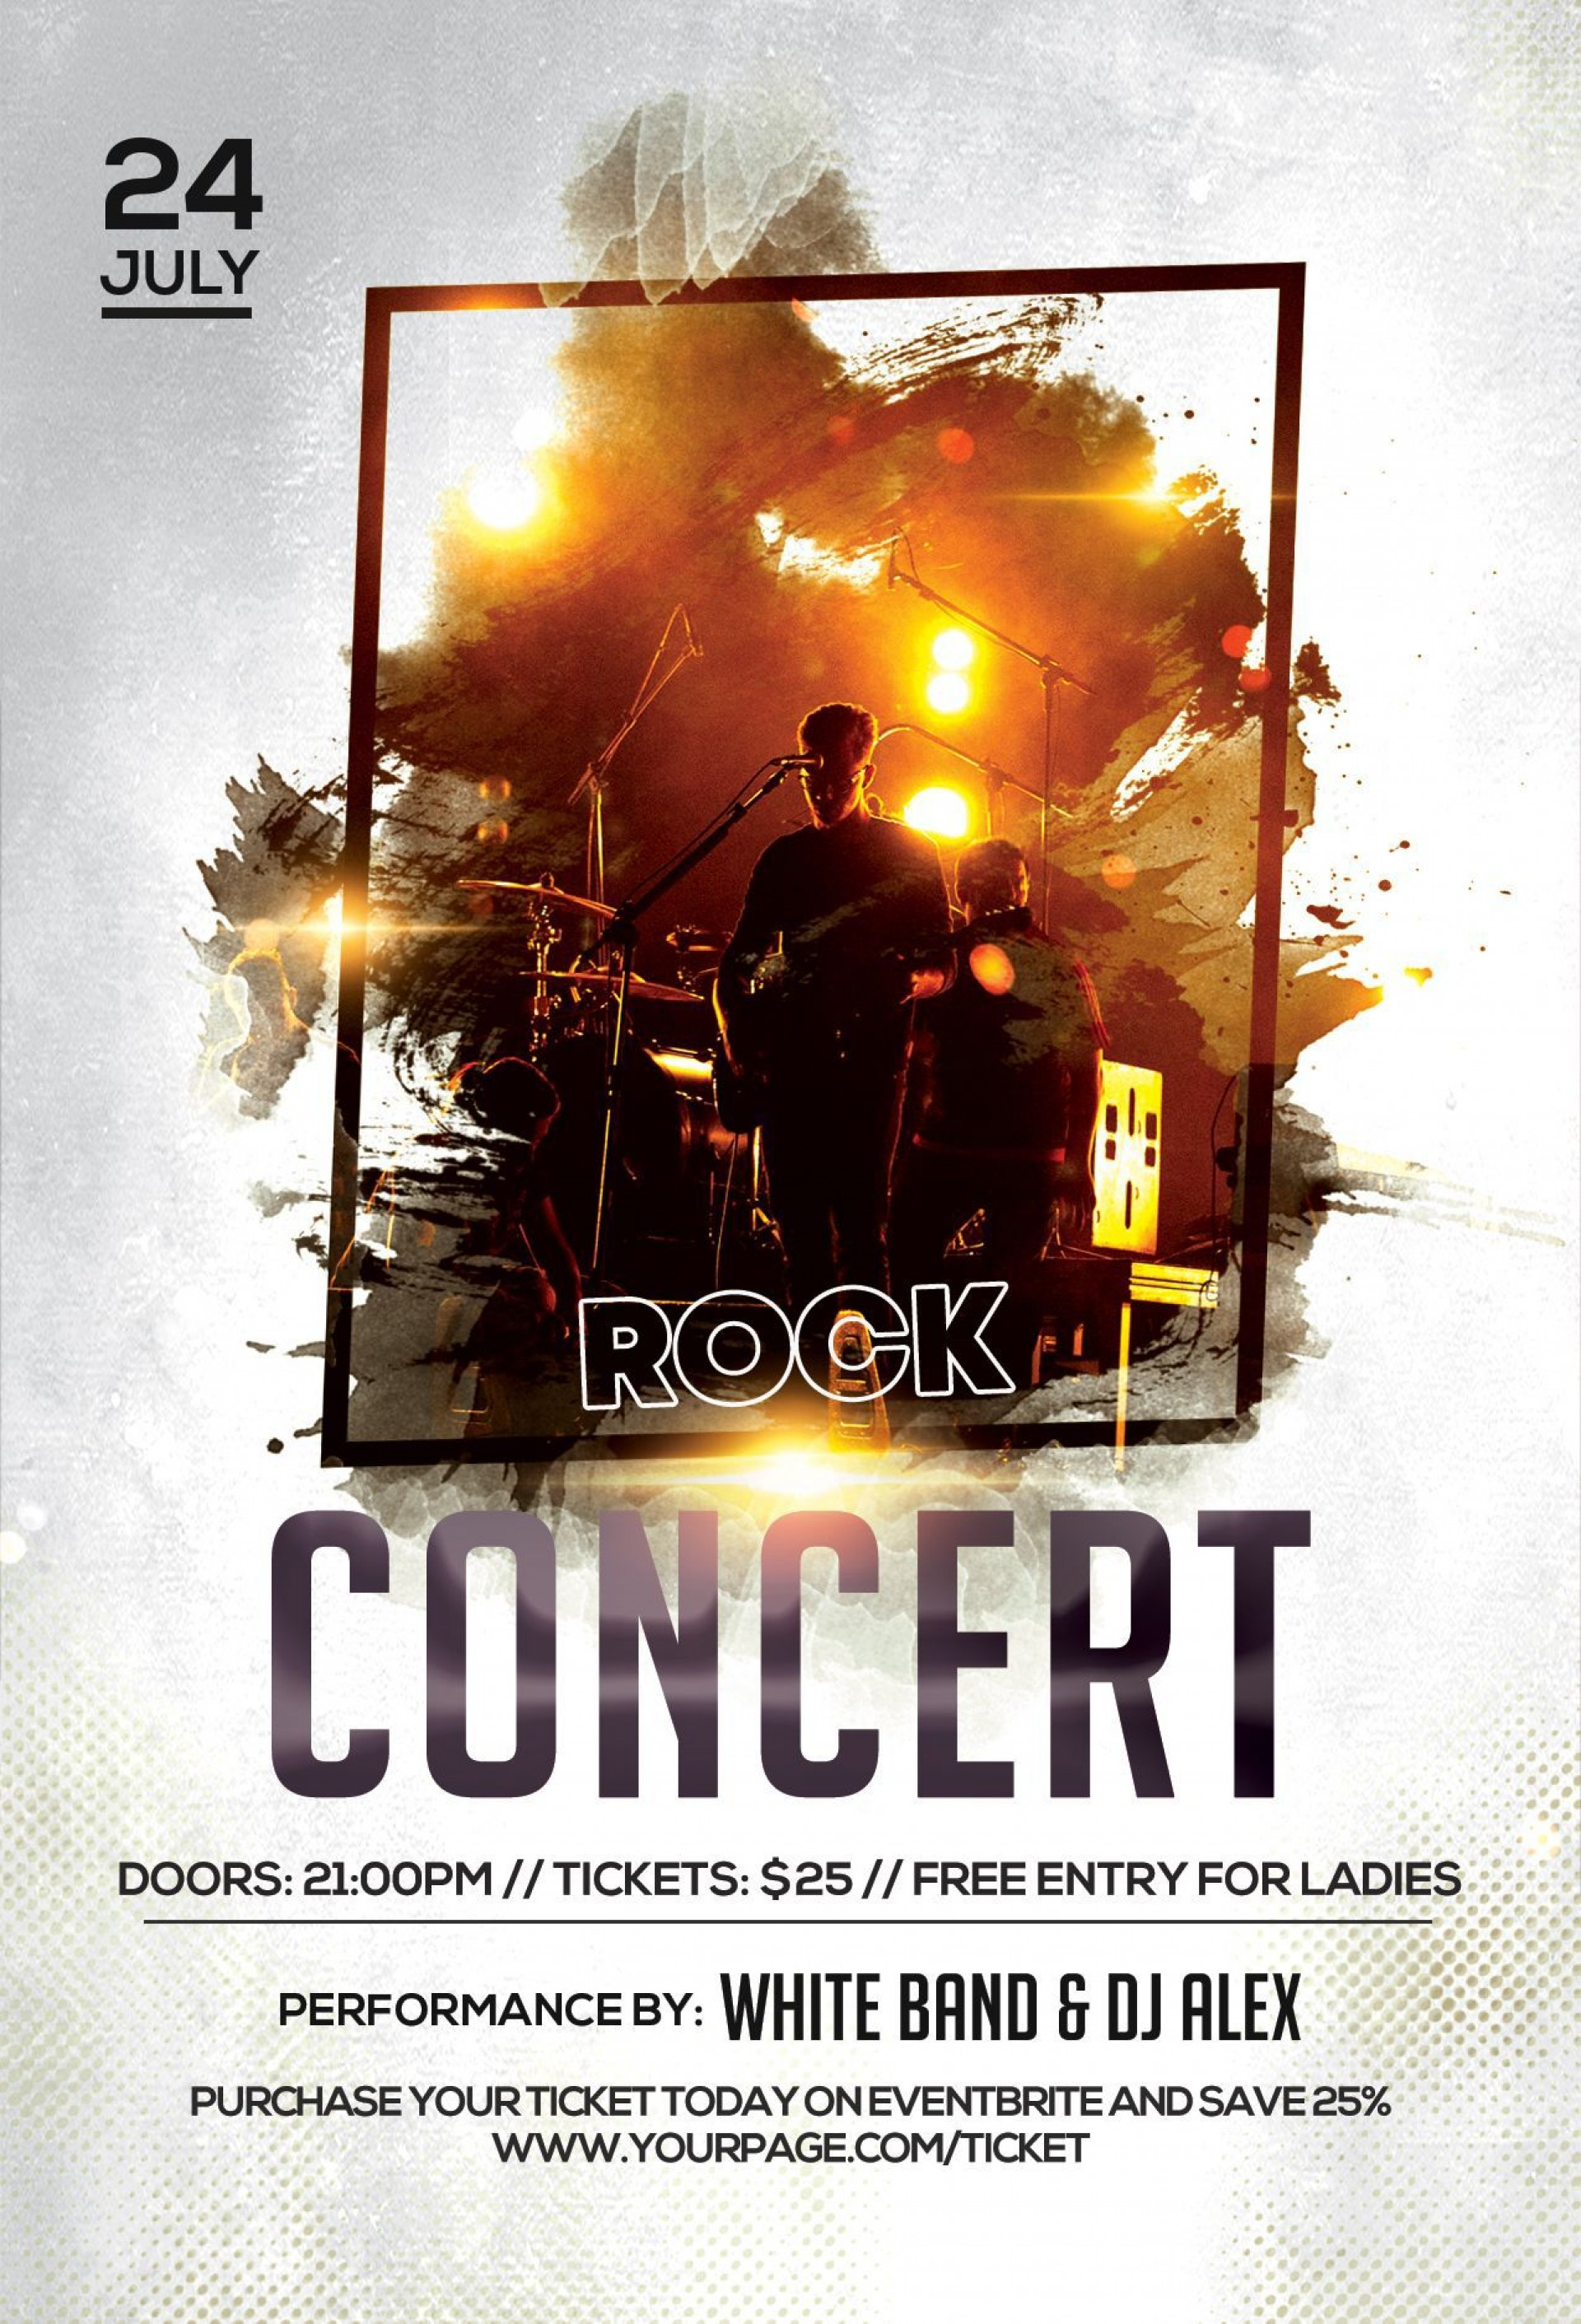 002 Fantastic Free Photoshop Concert Poster Template Highest Clarity  Templates1920